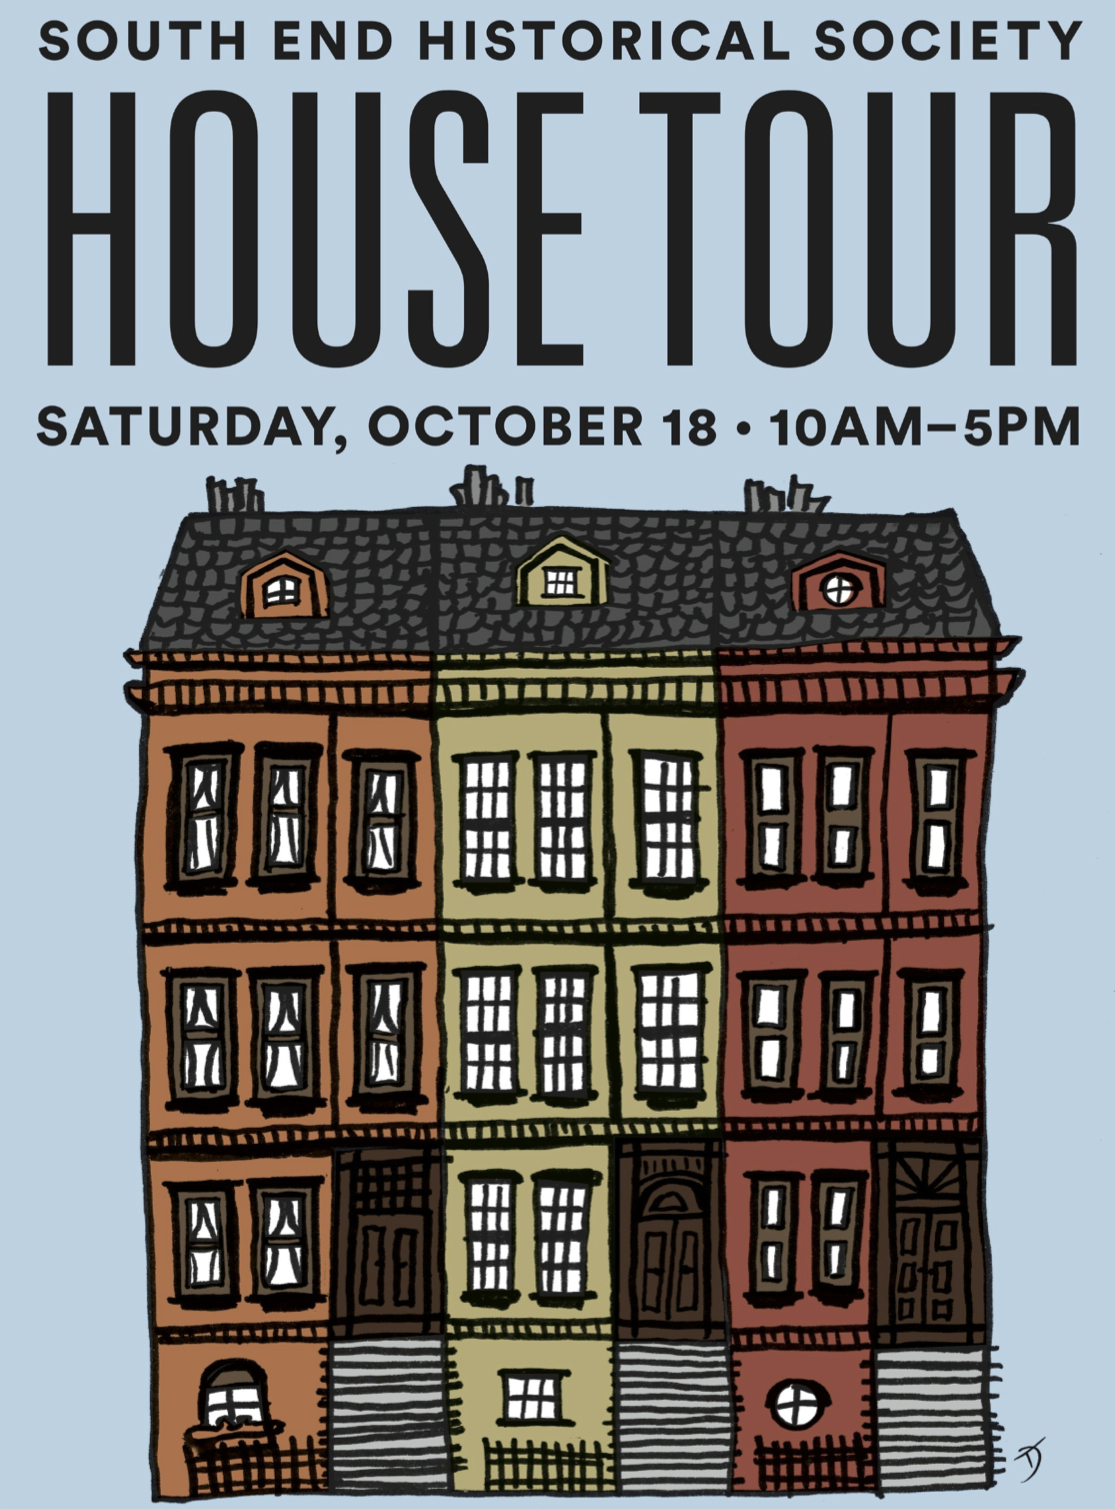 South End Historical Society House Tour